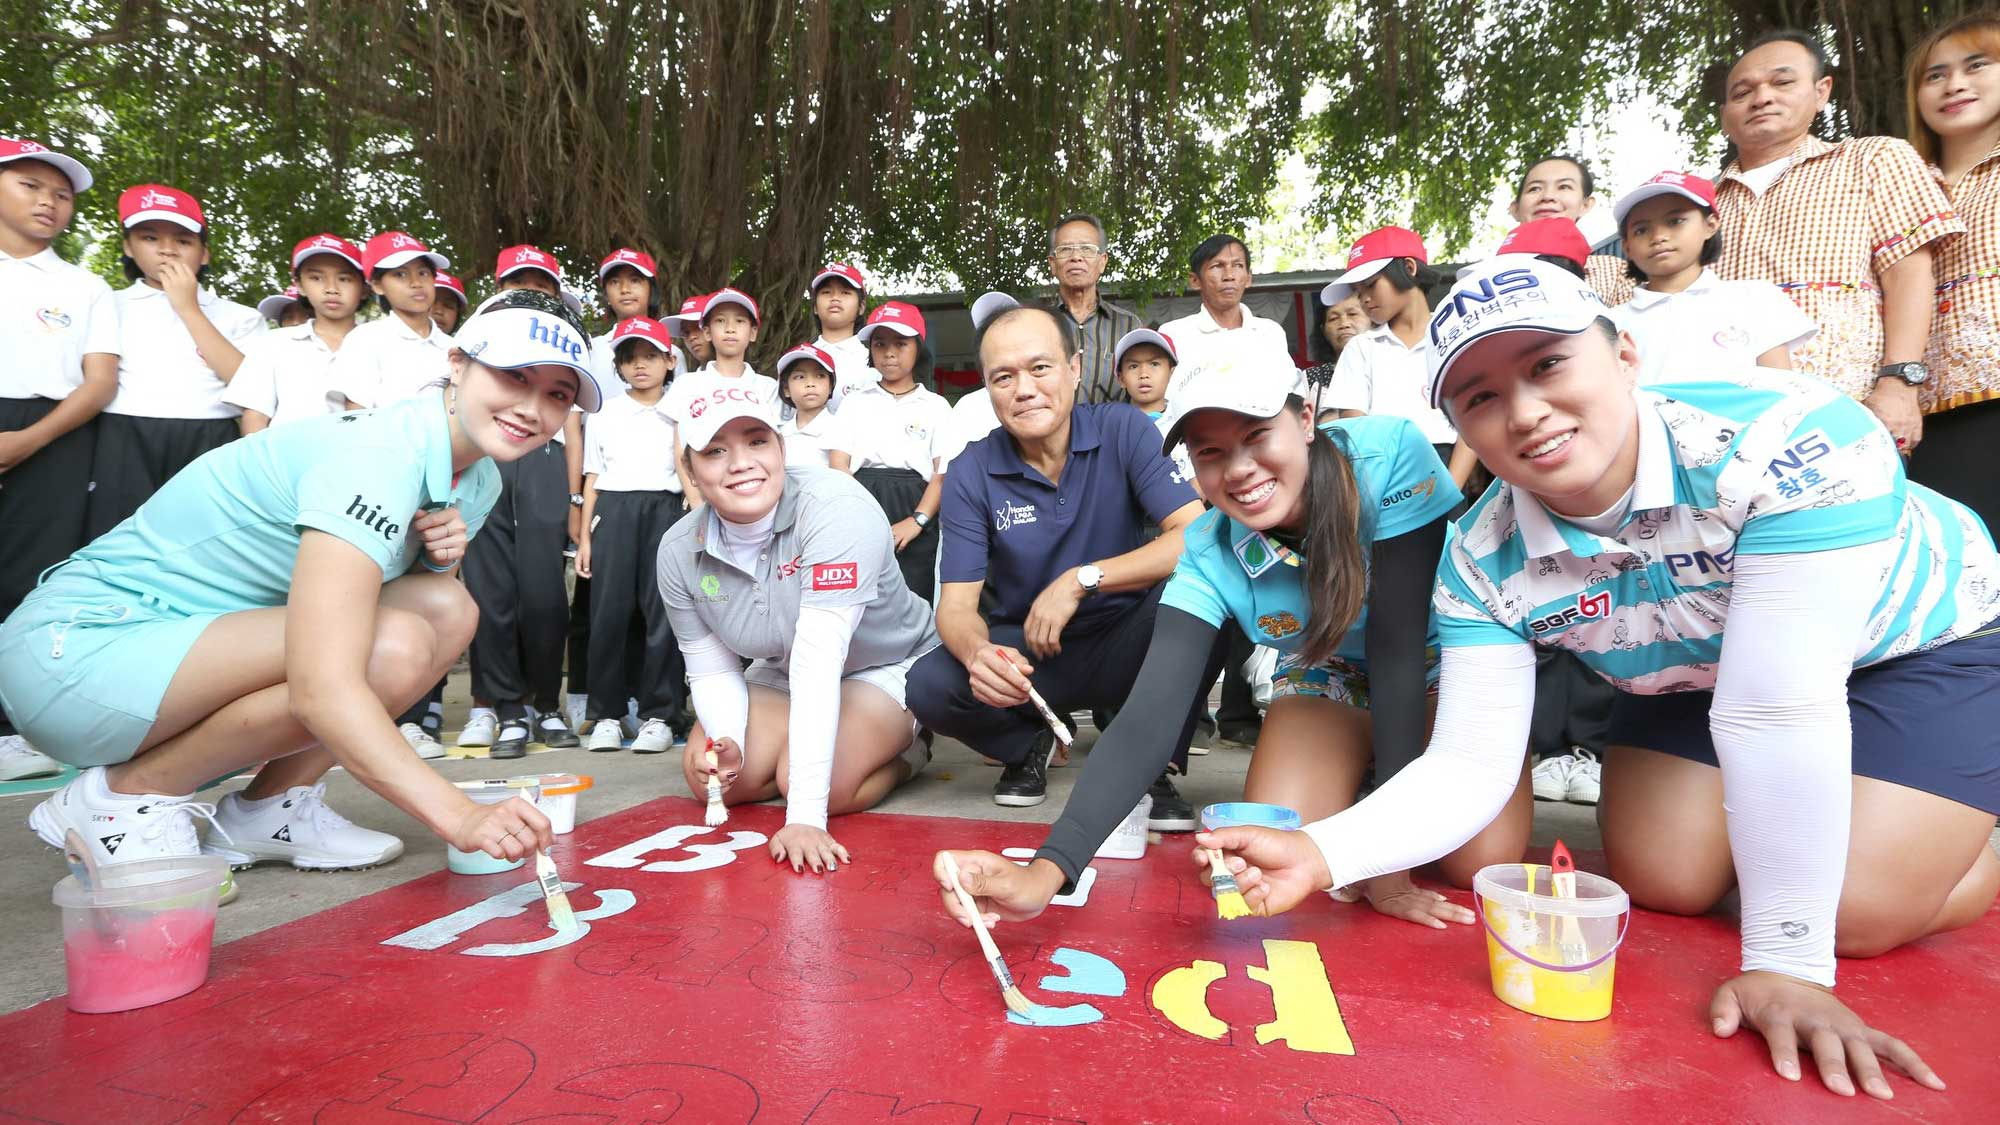 Ariya Jutanugarn Spends Time with Kids in Thailand